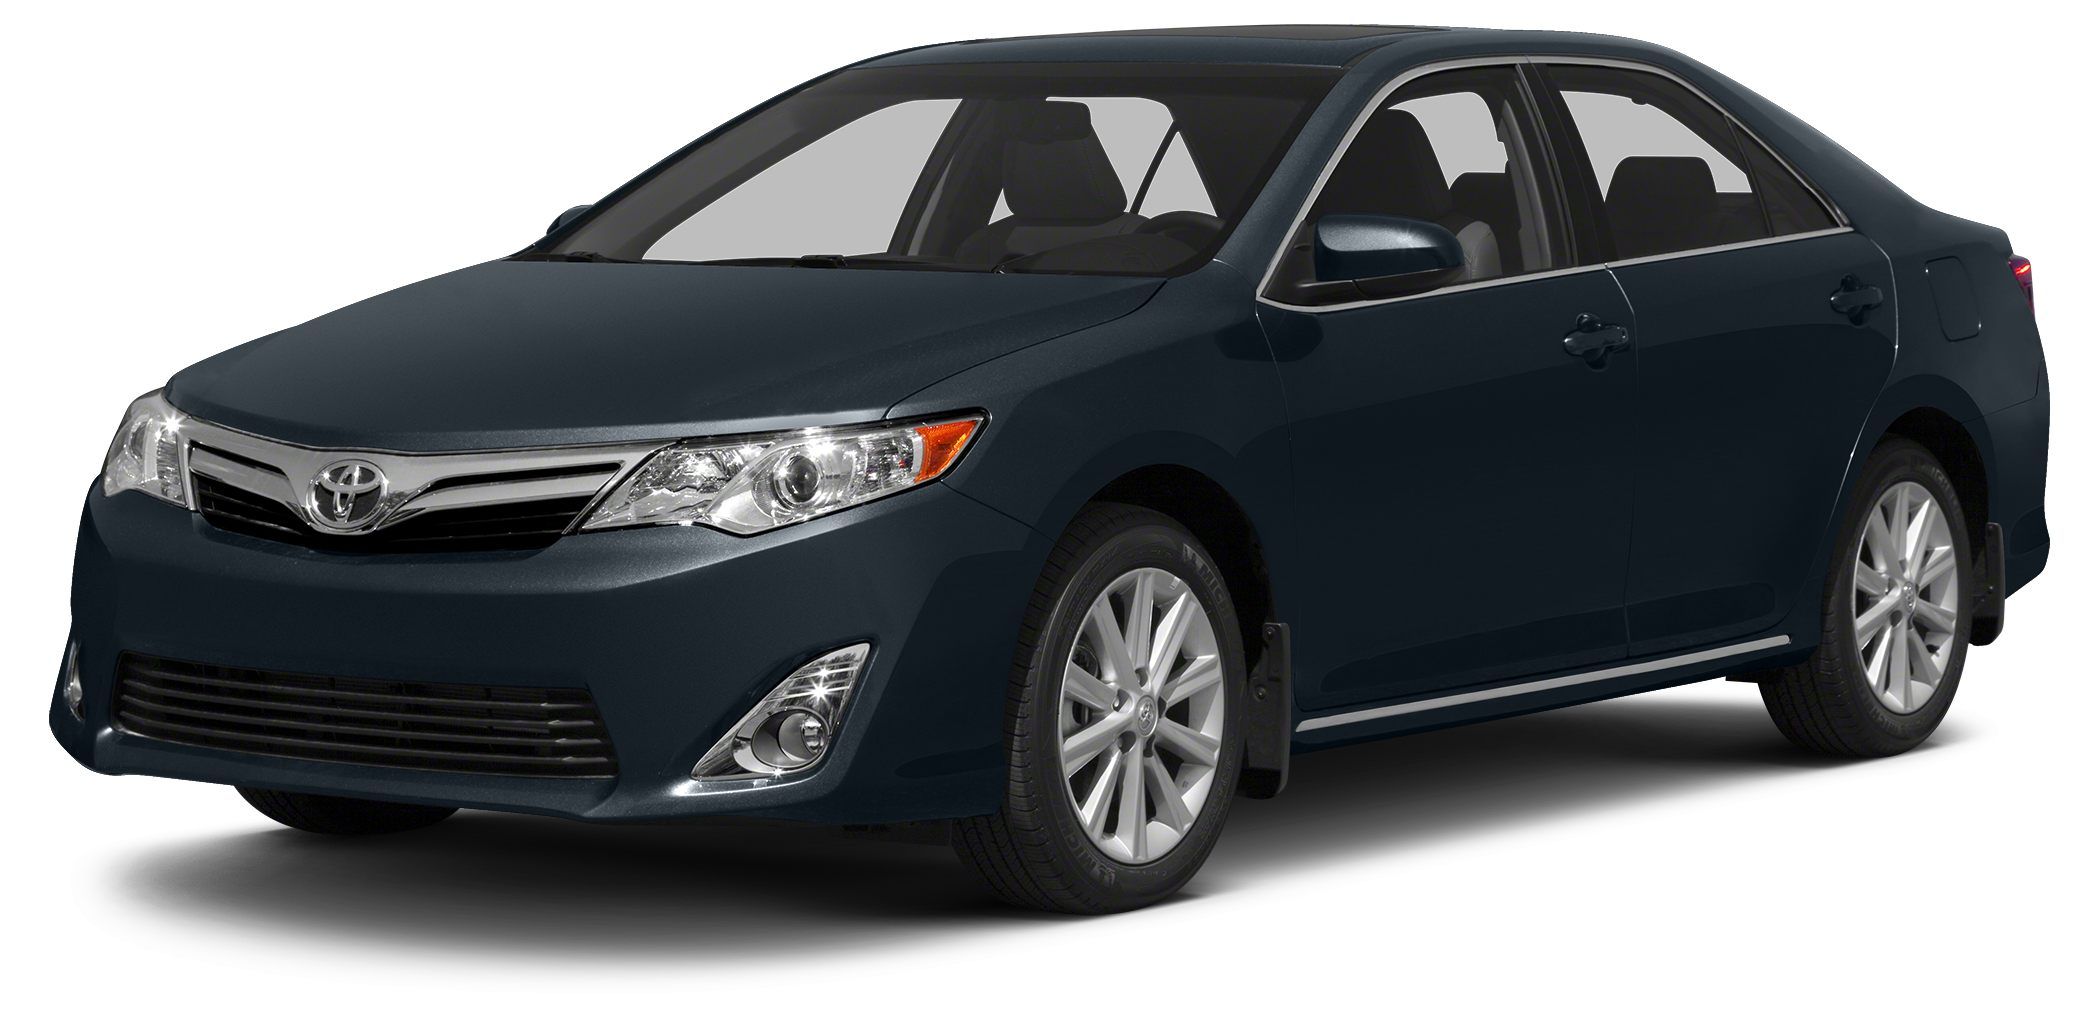 2014 Toyota Camry LE CARFAX 1-Owner LOW MILES - 38368 LE trim COSMIC GRAY MICA exterior and BL